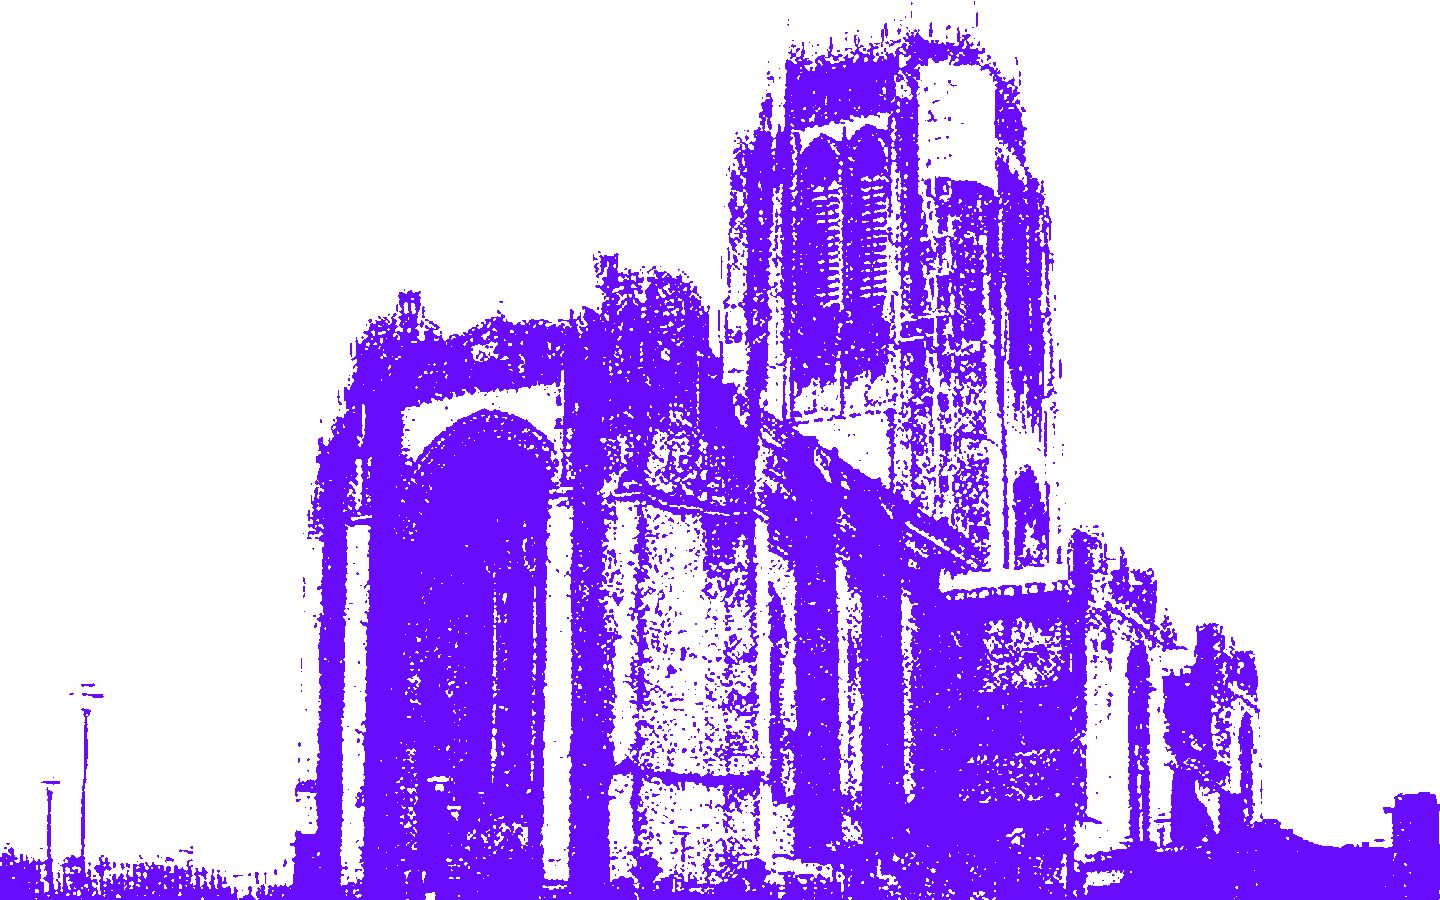 Cathedrals, Memes, Advertising, God and Liverpool